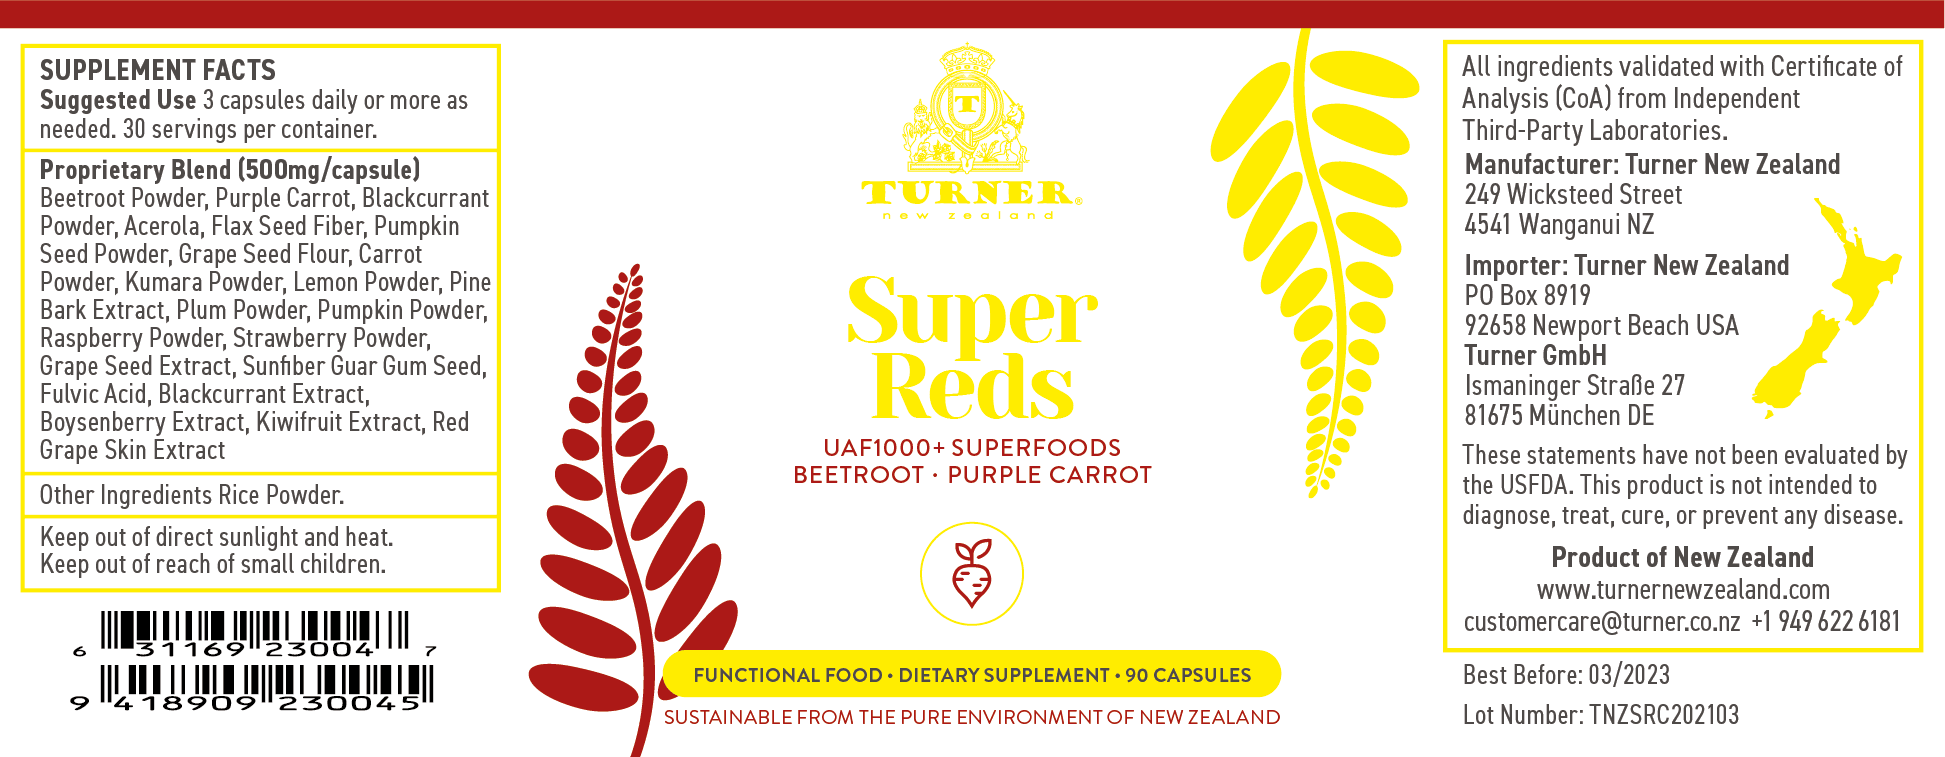 Super Reds - TURNER New Zealand